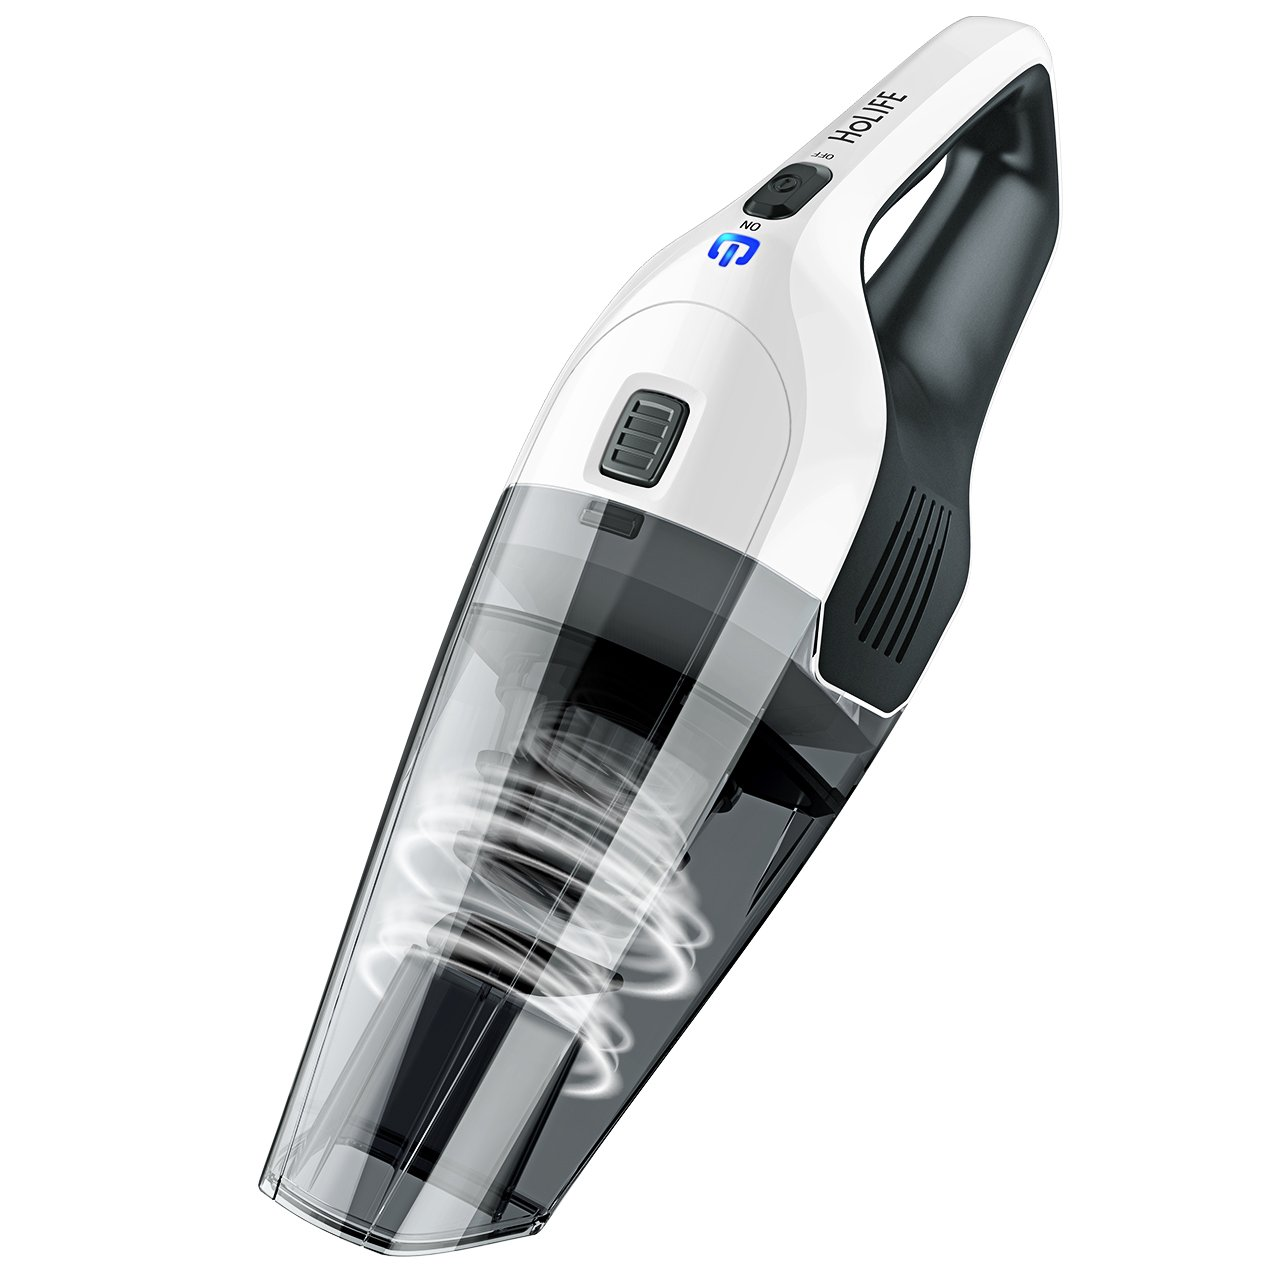 Cordless Hand Vacuum Cleaner, HOLIFE Handheld Vacuum Portable Car Vacuum Cleaner Lightweight Hand Vac with 4Kpa Suction, Rechargeable 2200mAh Lithium Battery, Multifunctional Attachments, HEPA Filter